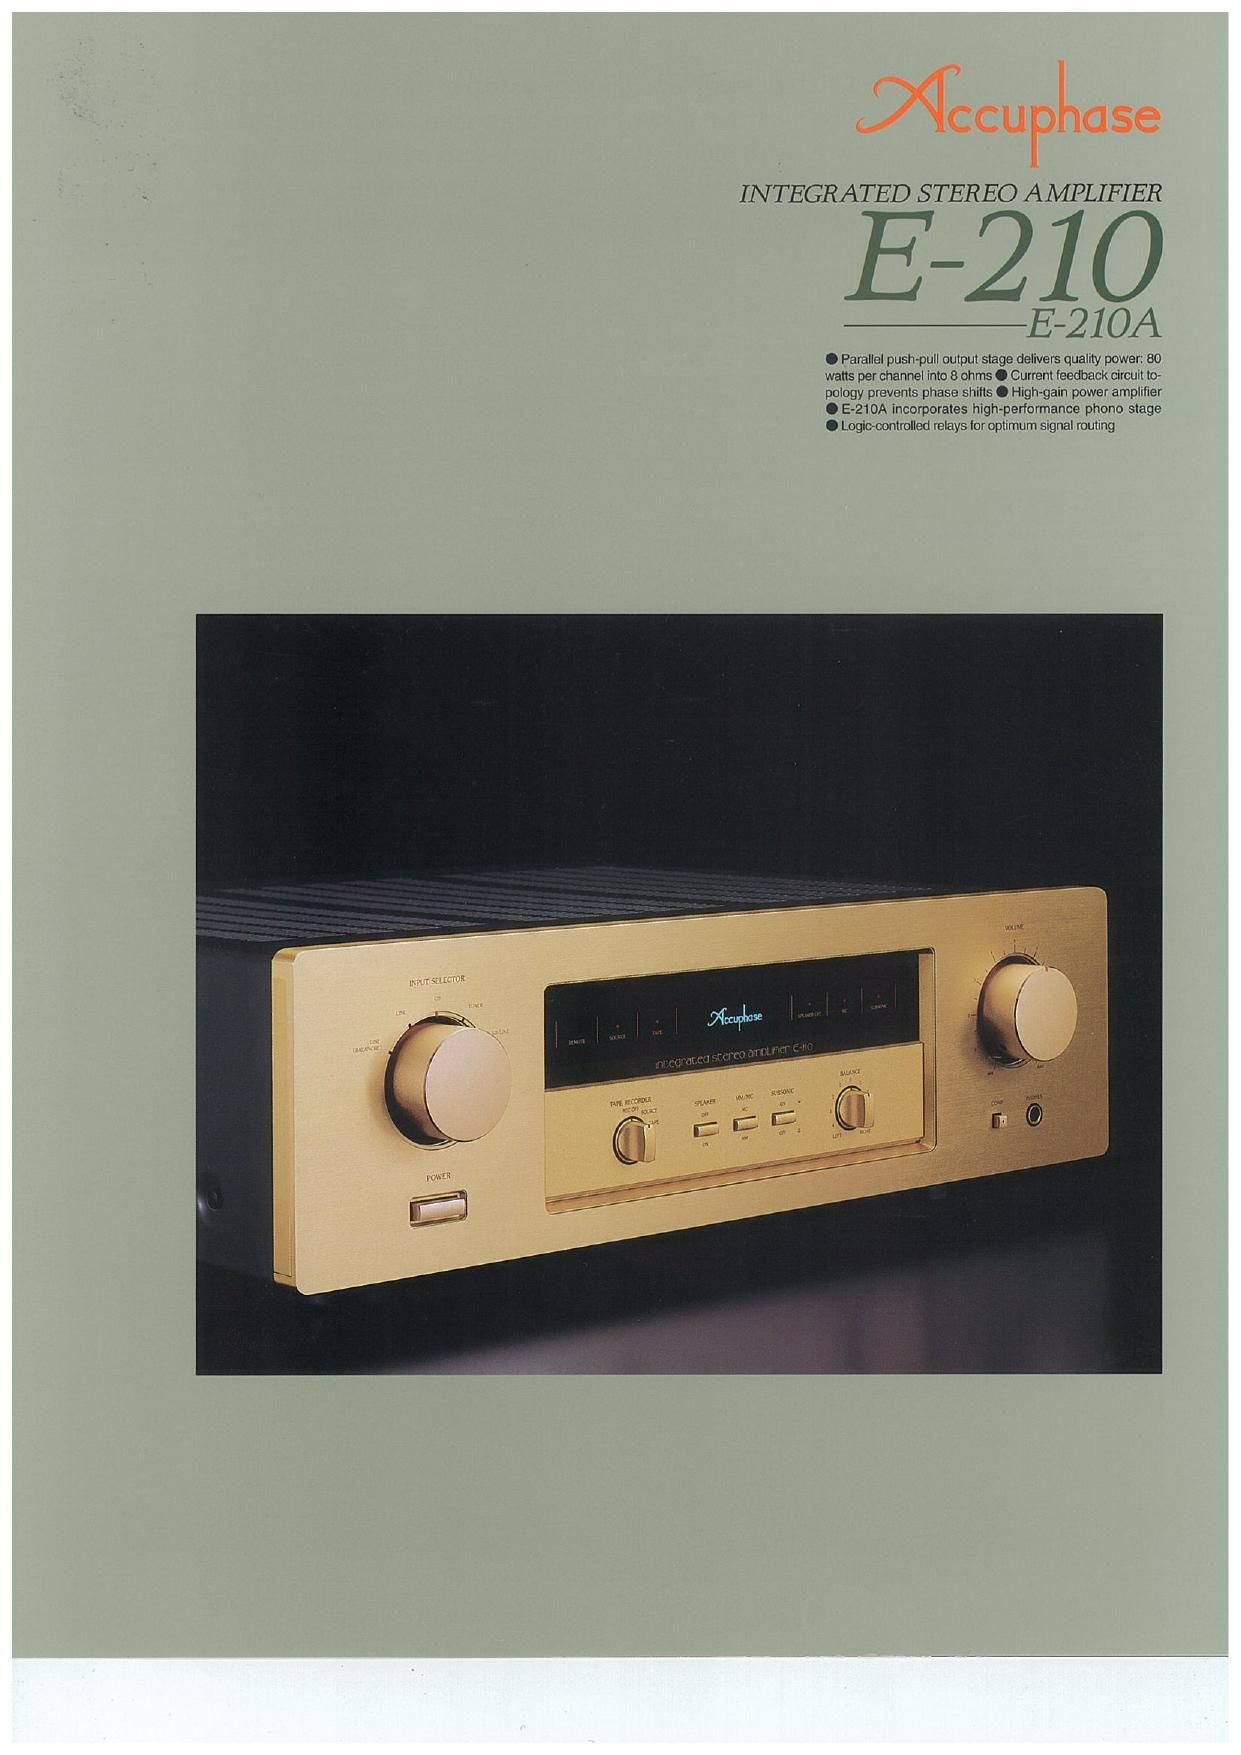 Accuphase E 210 Brochure